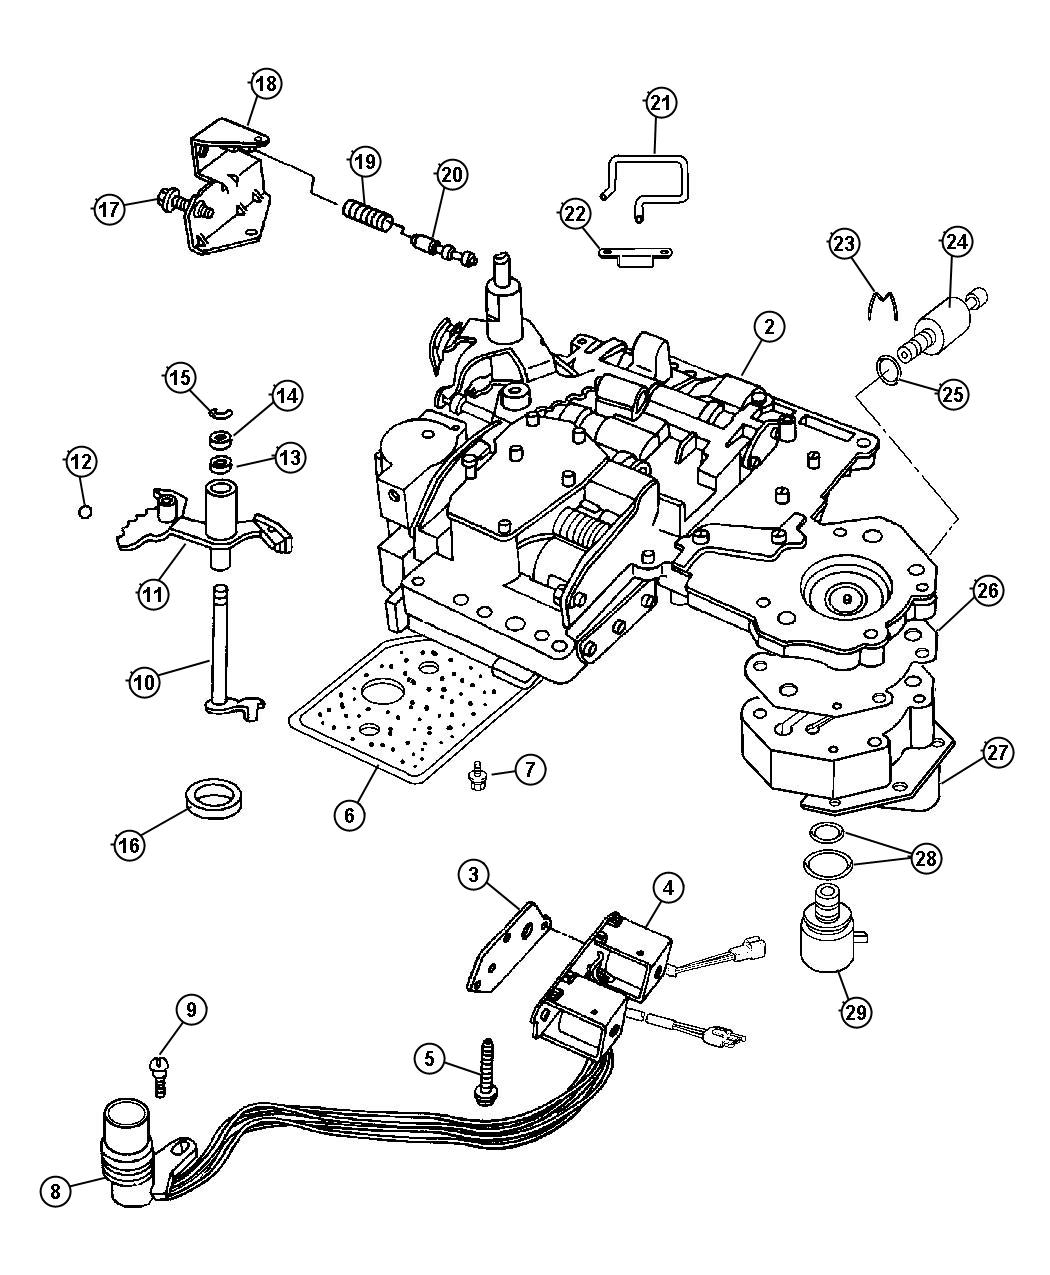 Wiring Diagram 29 Dodge Ram Parts Diagram